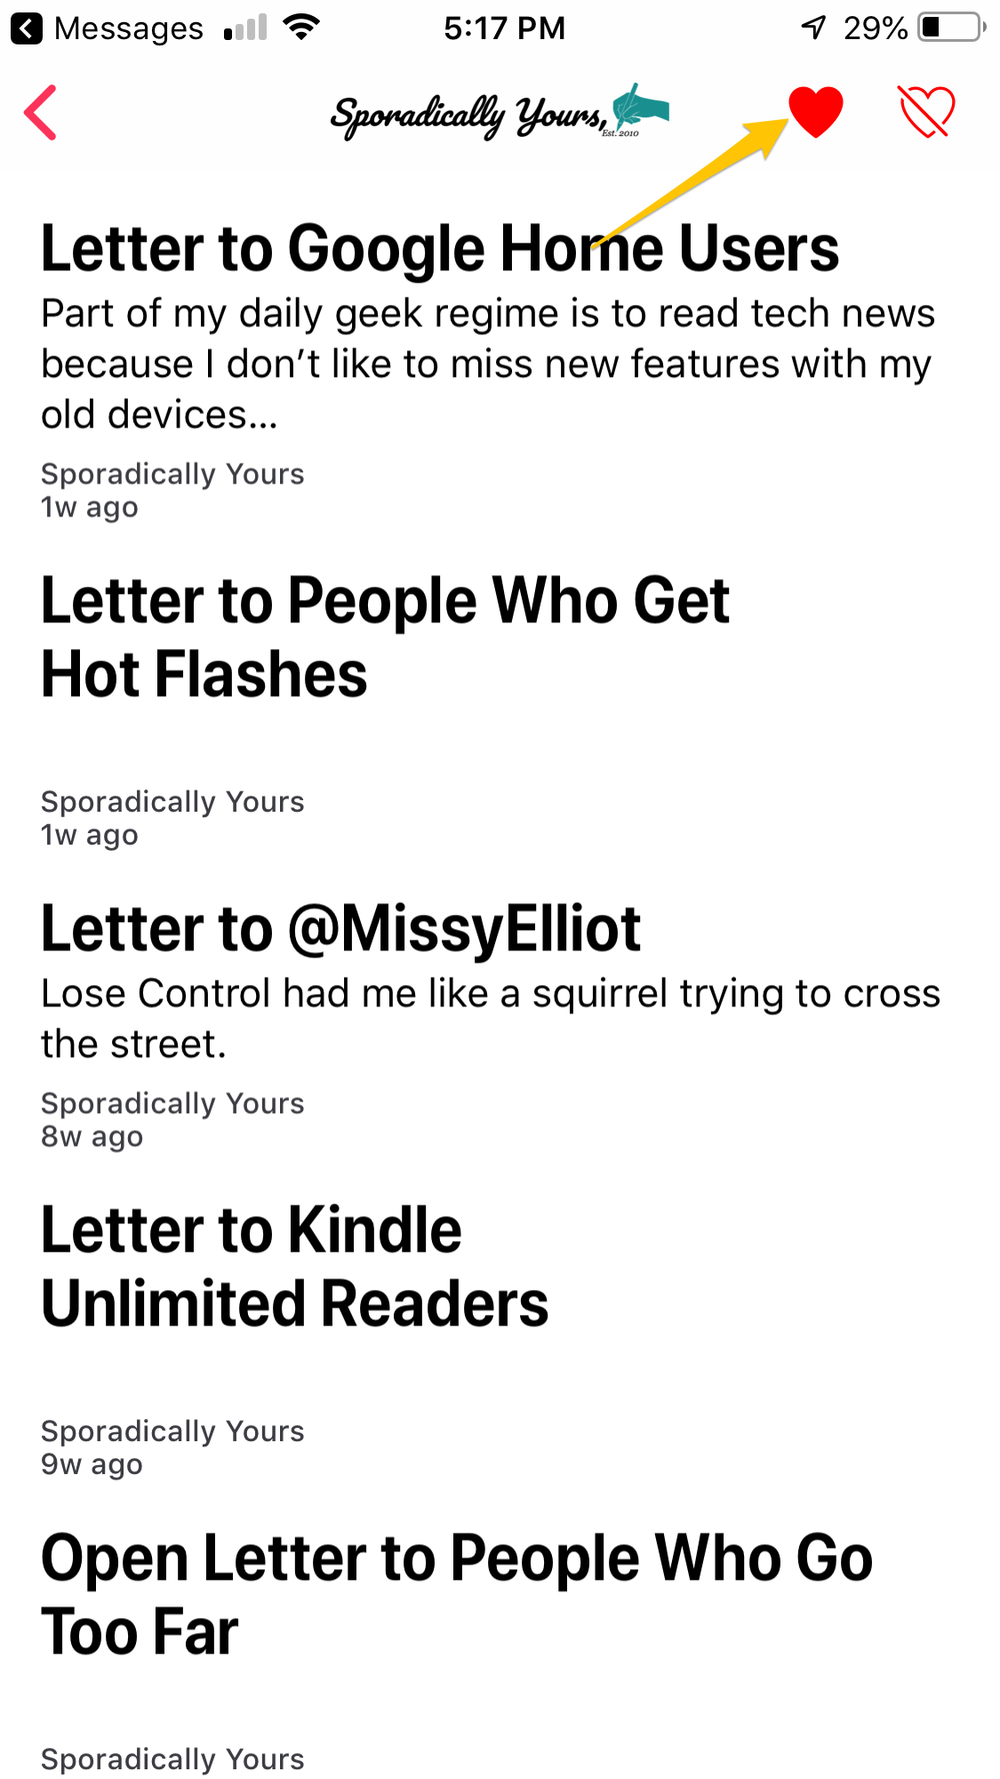 Sporadically Yours on Apple News - If you'd like to see me in your Apple News, just click subscribe on your device with iOS 9 or later or macOS 10.14 or later. Click the heart and I'll forever be in your Apple News sidebar. I think you have to do this from each device you read Apple News. not sureThen all you have to do is remember to check it.